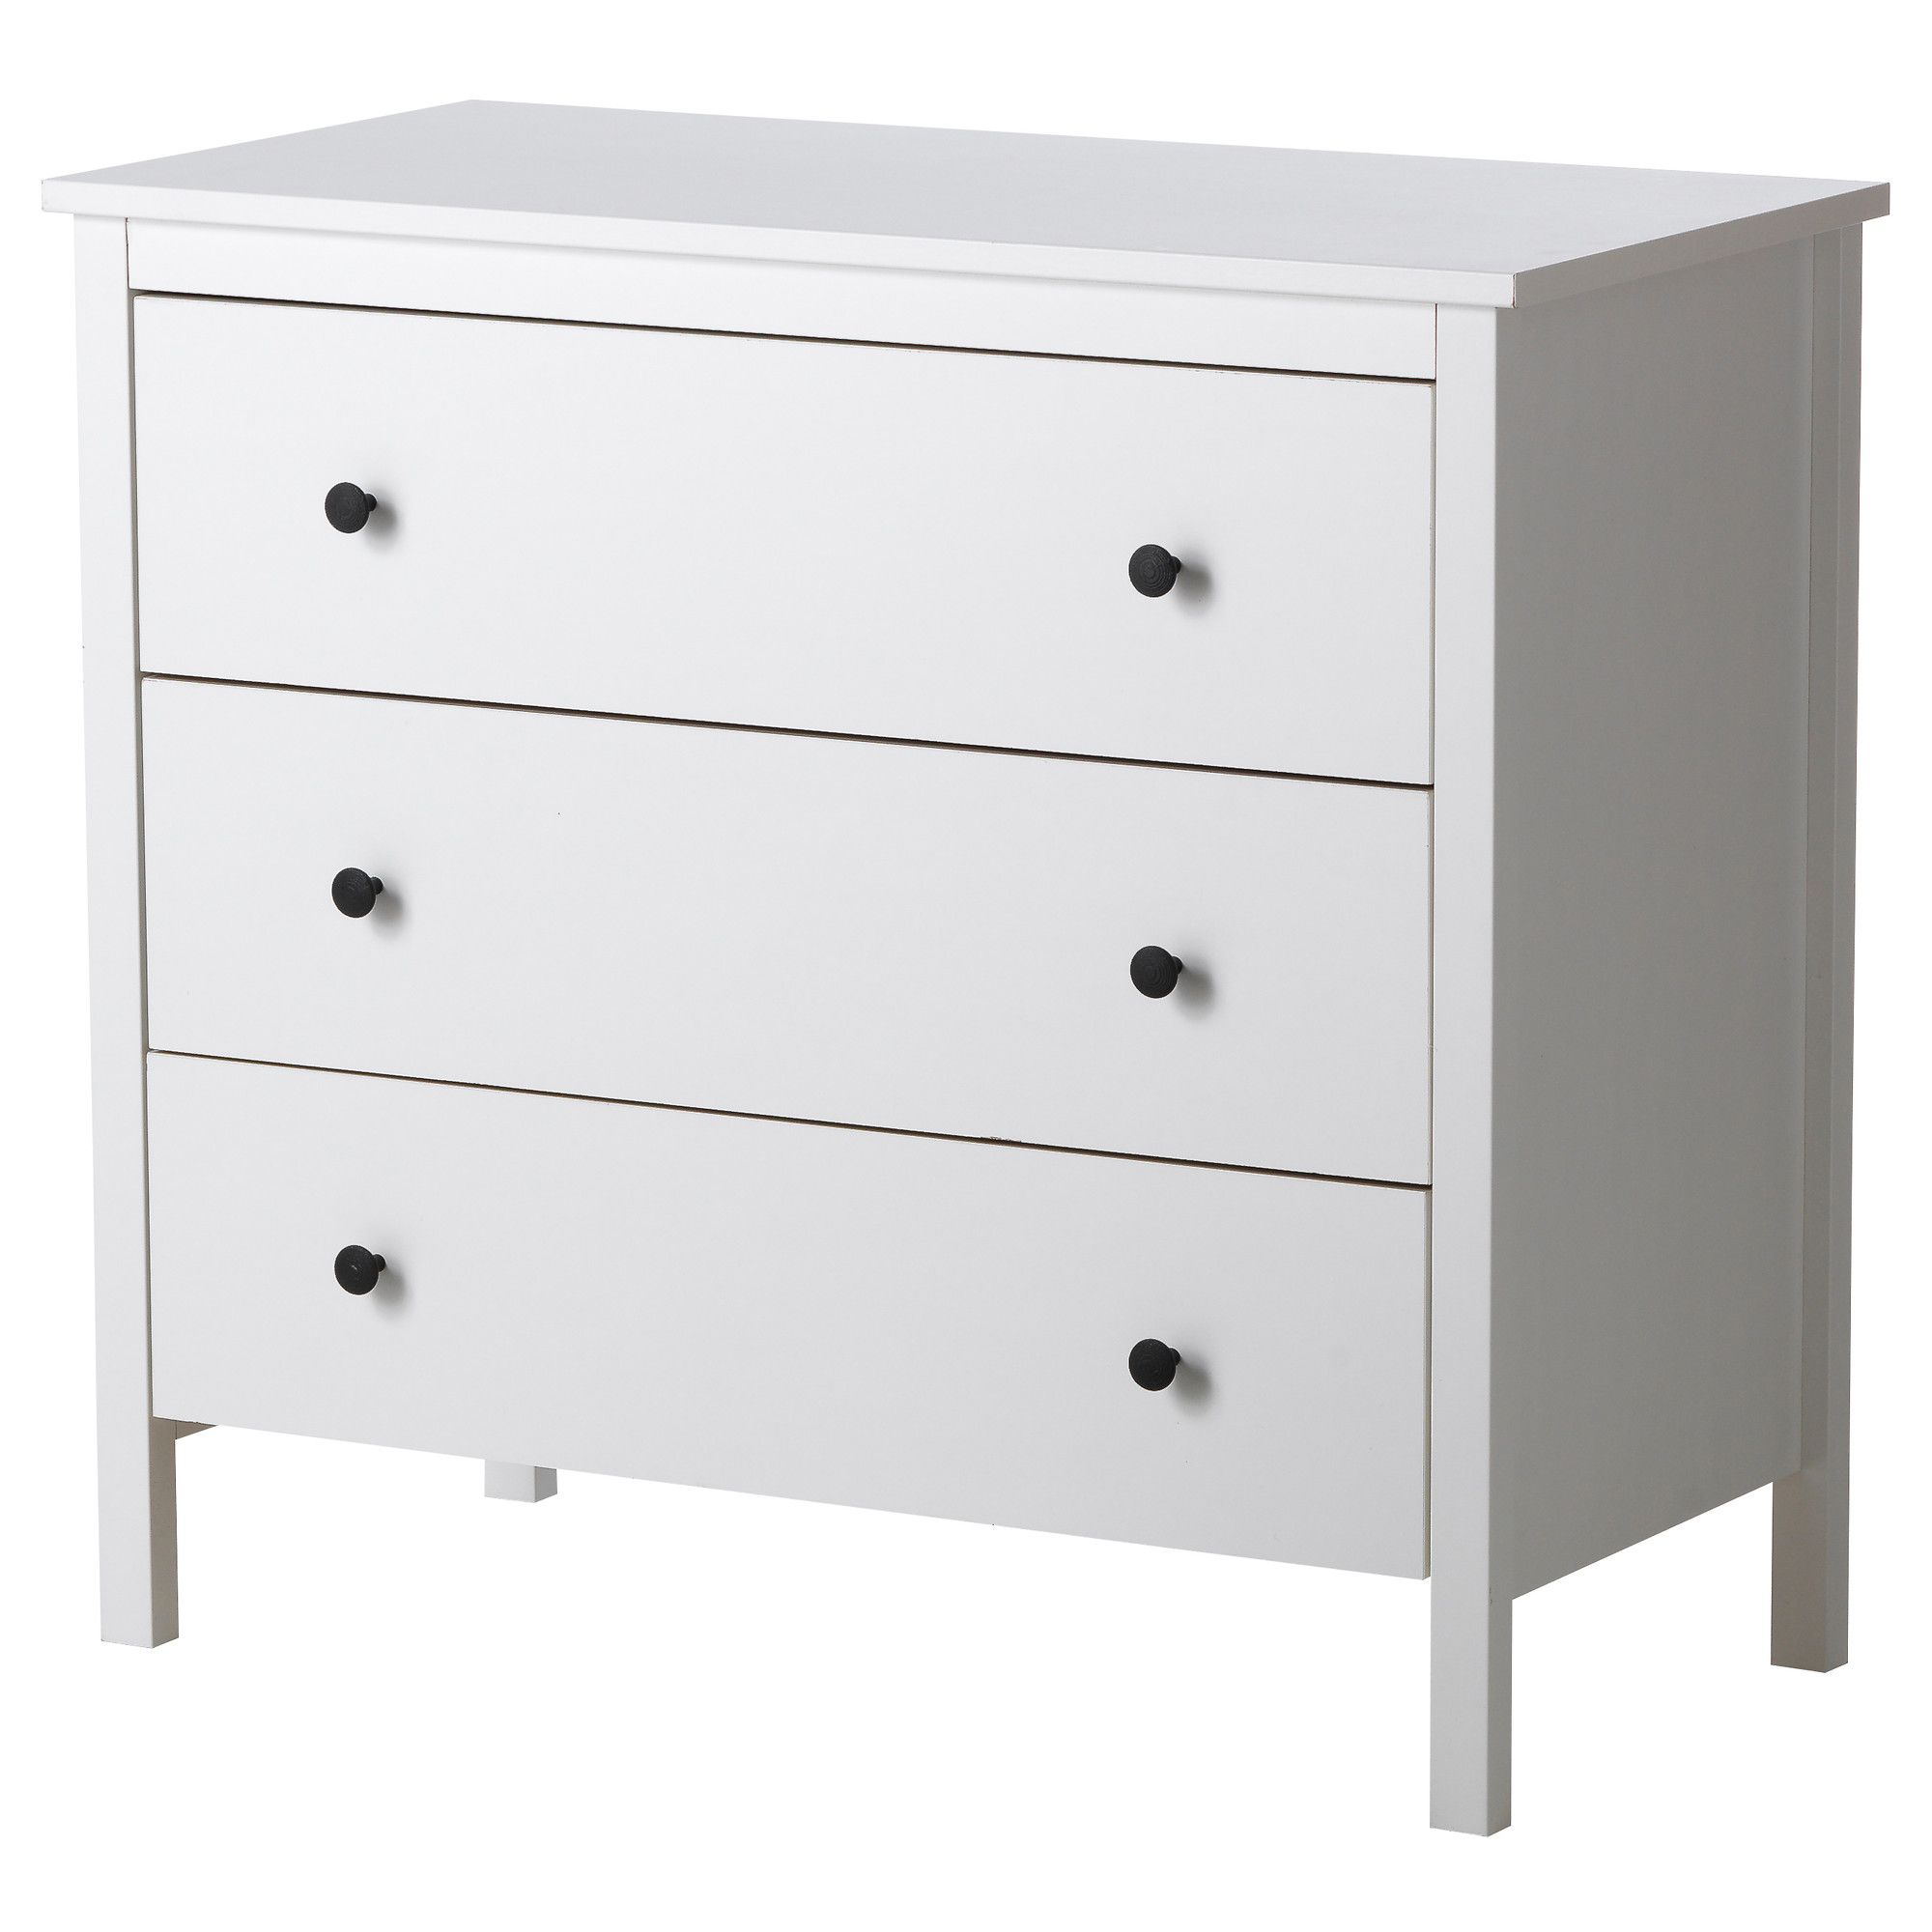 This Dresser Will Fit Perfectly In Our Small Space  I Plan To Make It More  Personal With Different Drawer Pulls KOPPANG 3 Chest IKEA White7